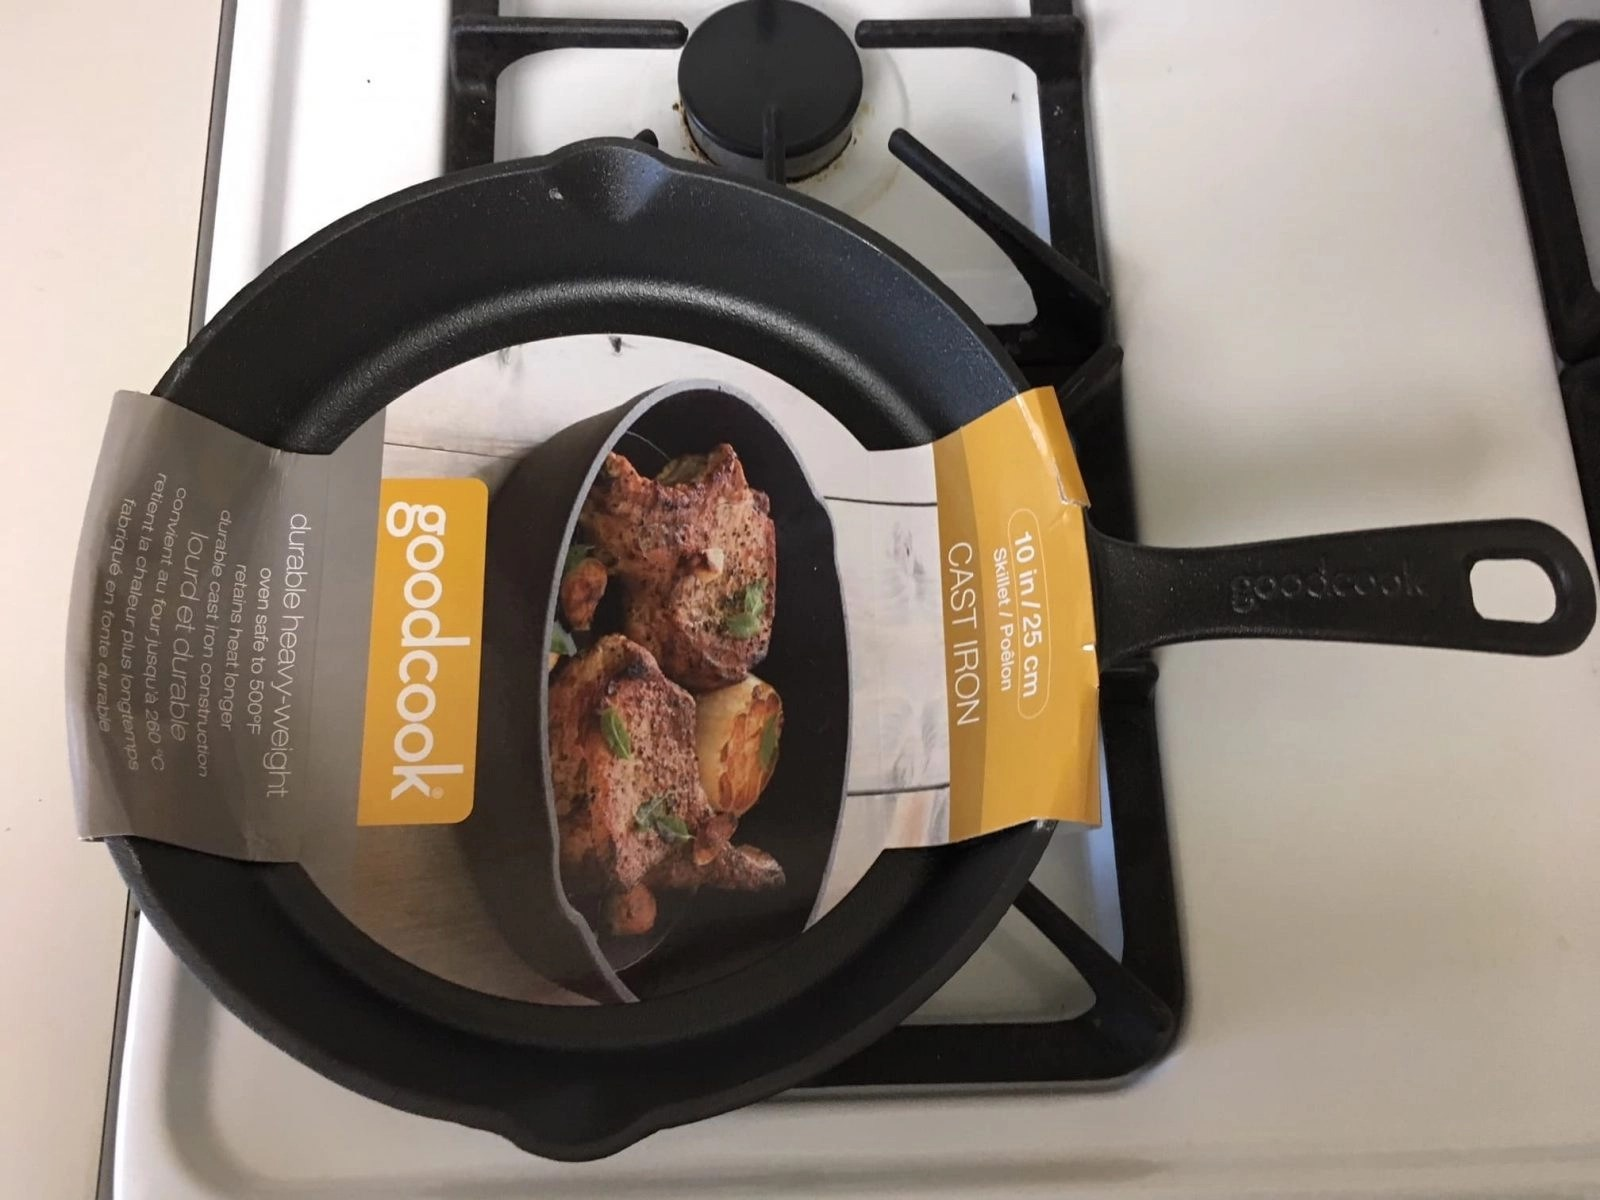 Cast Iron Skillet on the stove